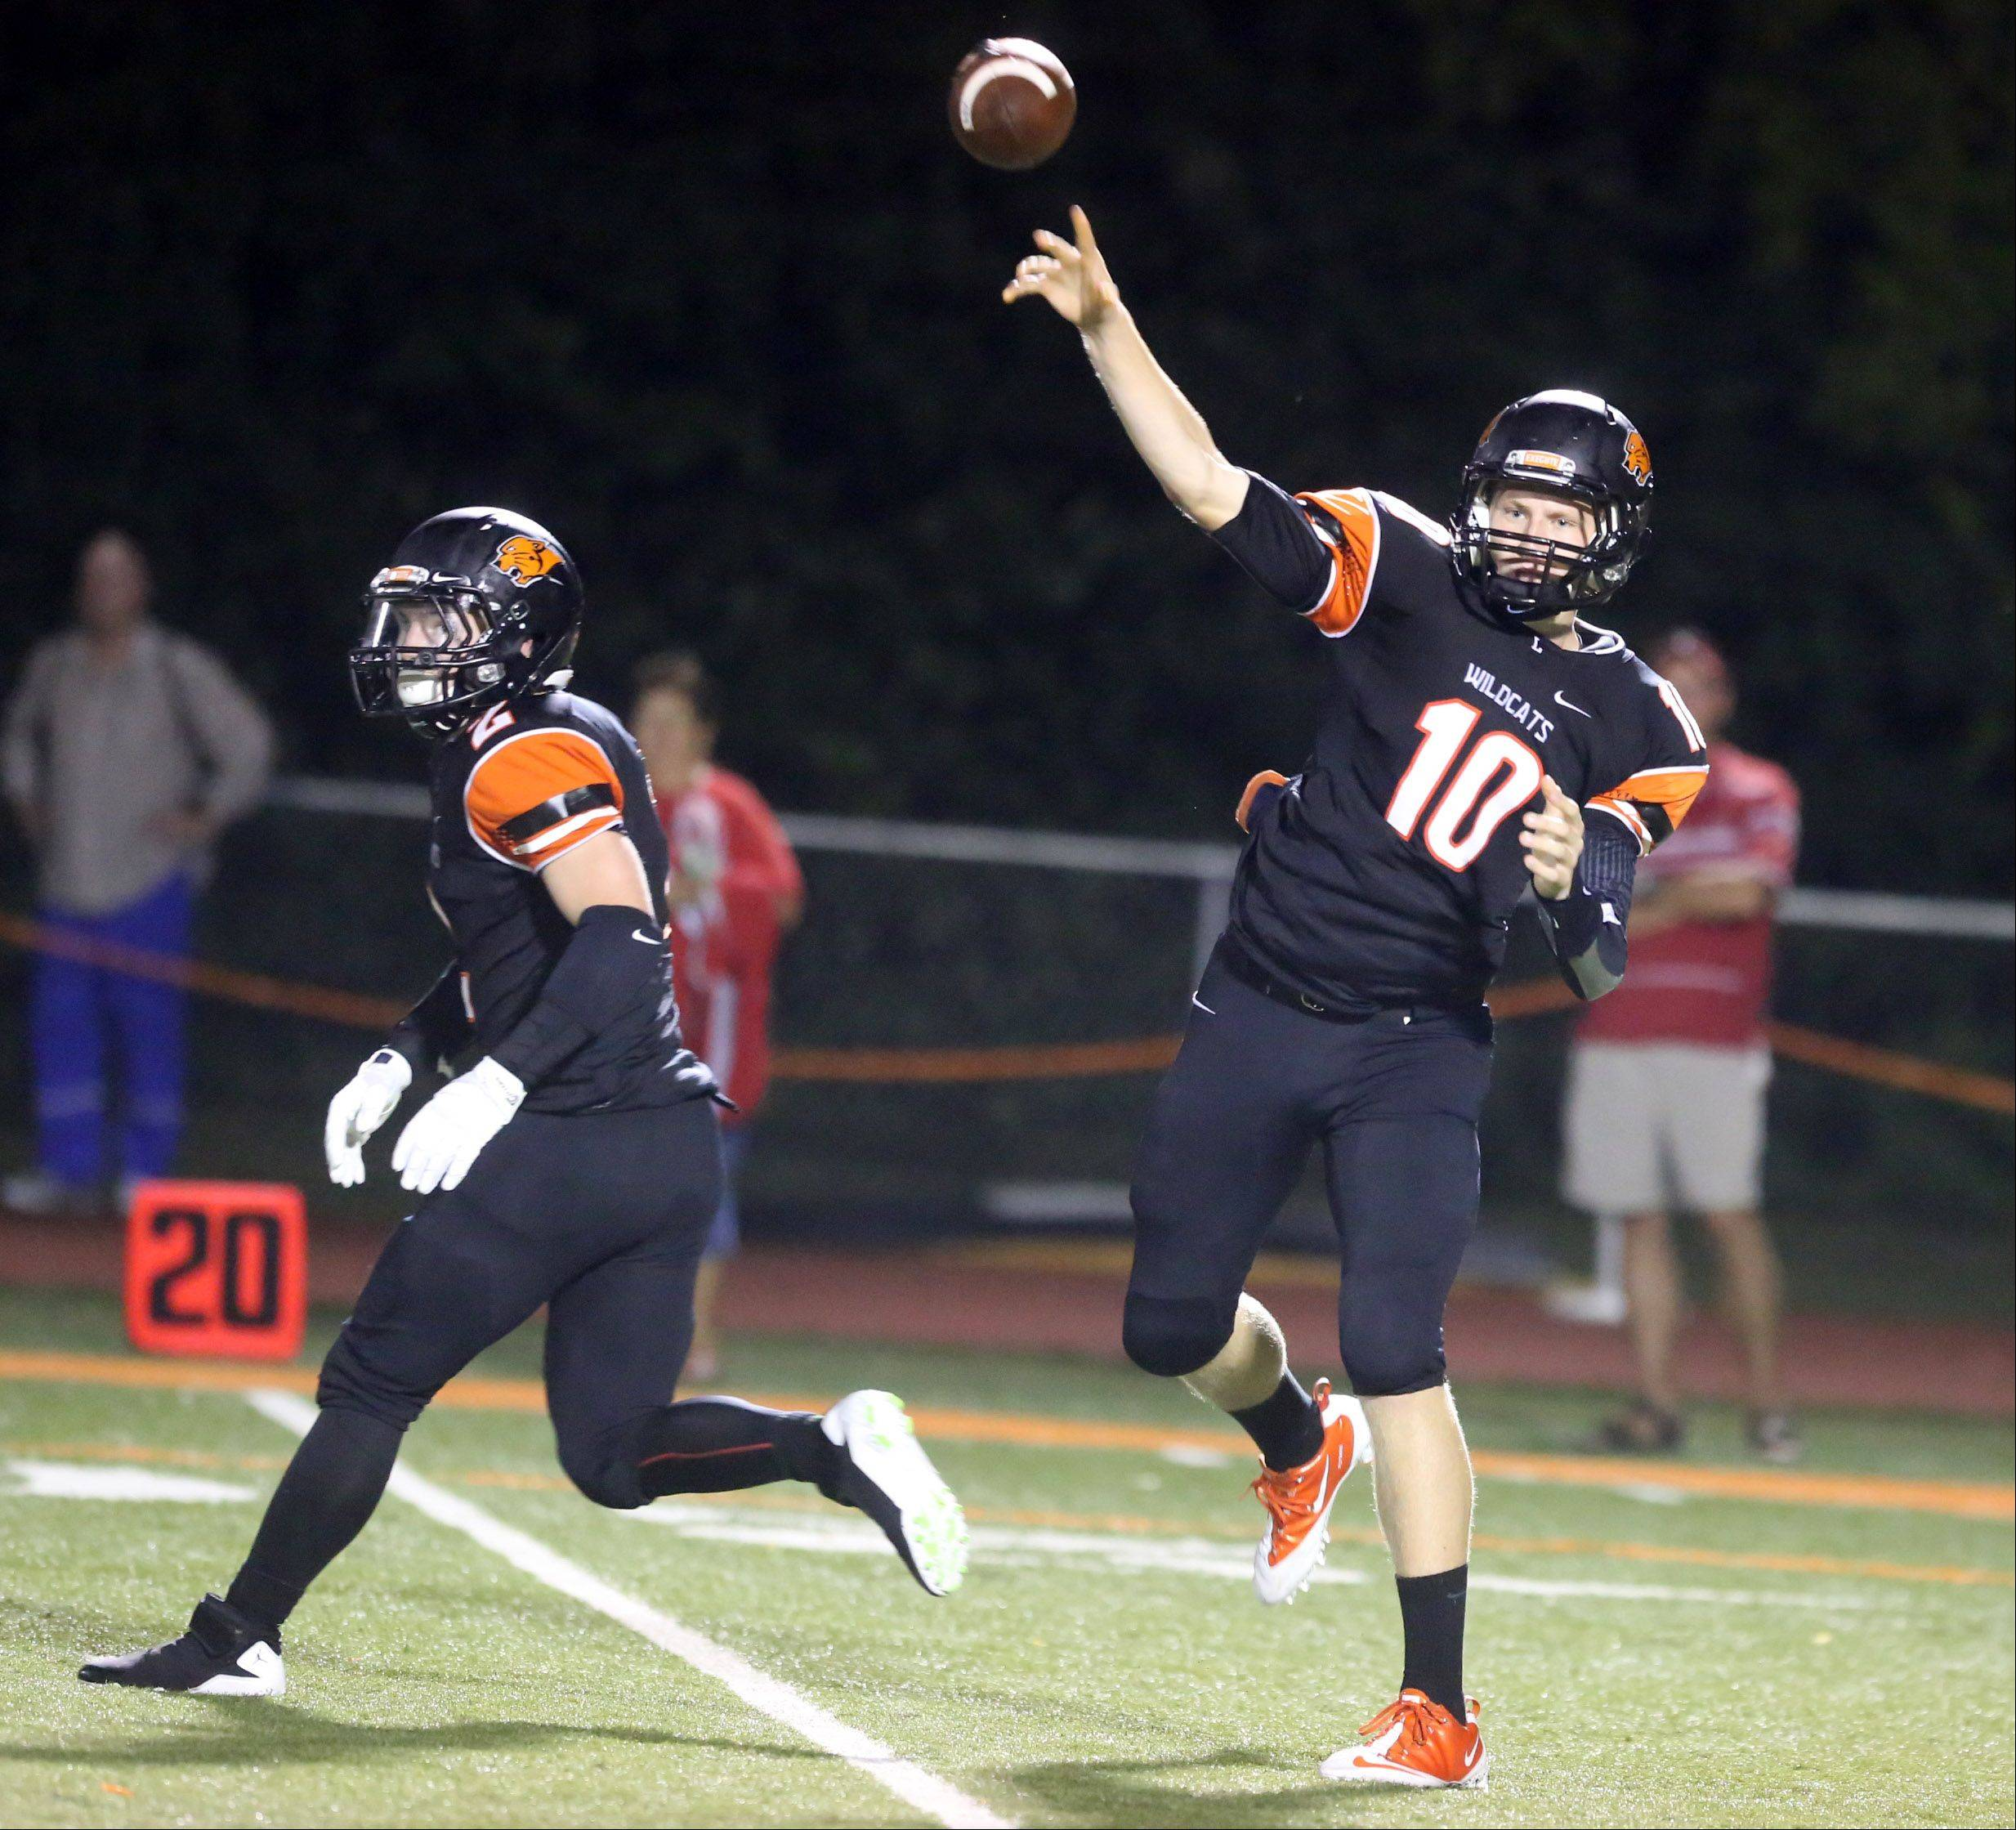 Libertyville quarterback Anthony Monken, here delivering a pass to receiver Sean Ferraro, is headed for collegiate quarterbacking at Louisiana-Monroe.